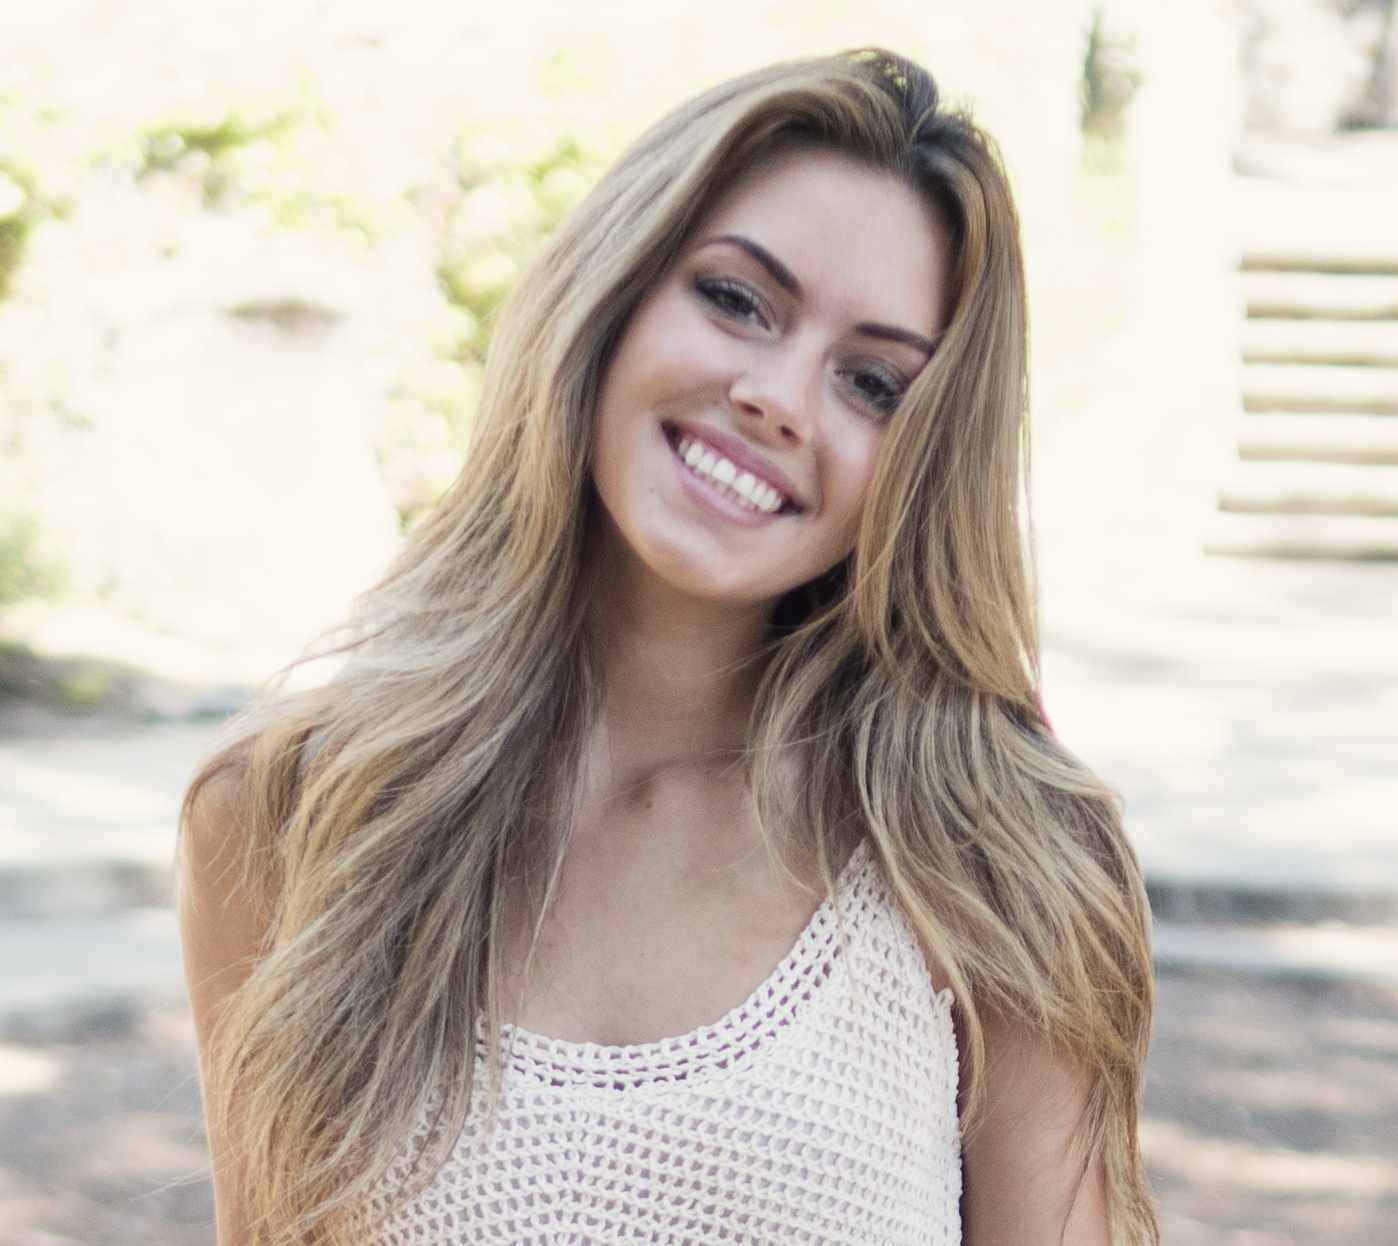 woman smiling and lookingly girly